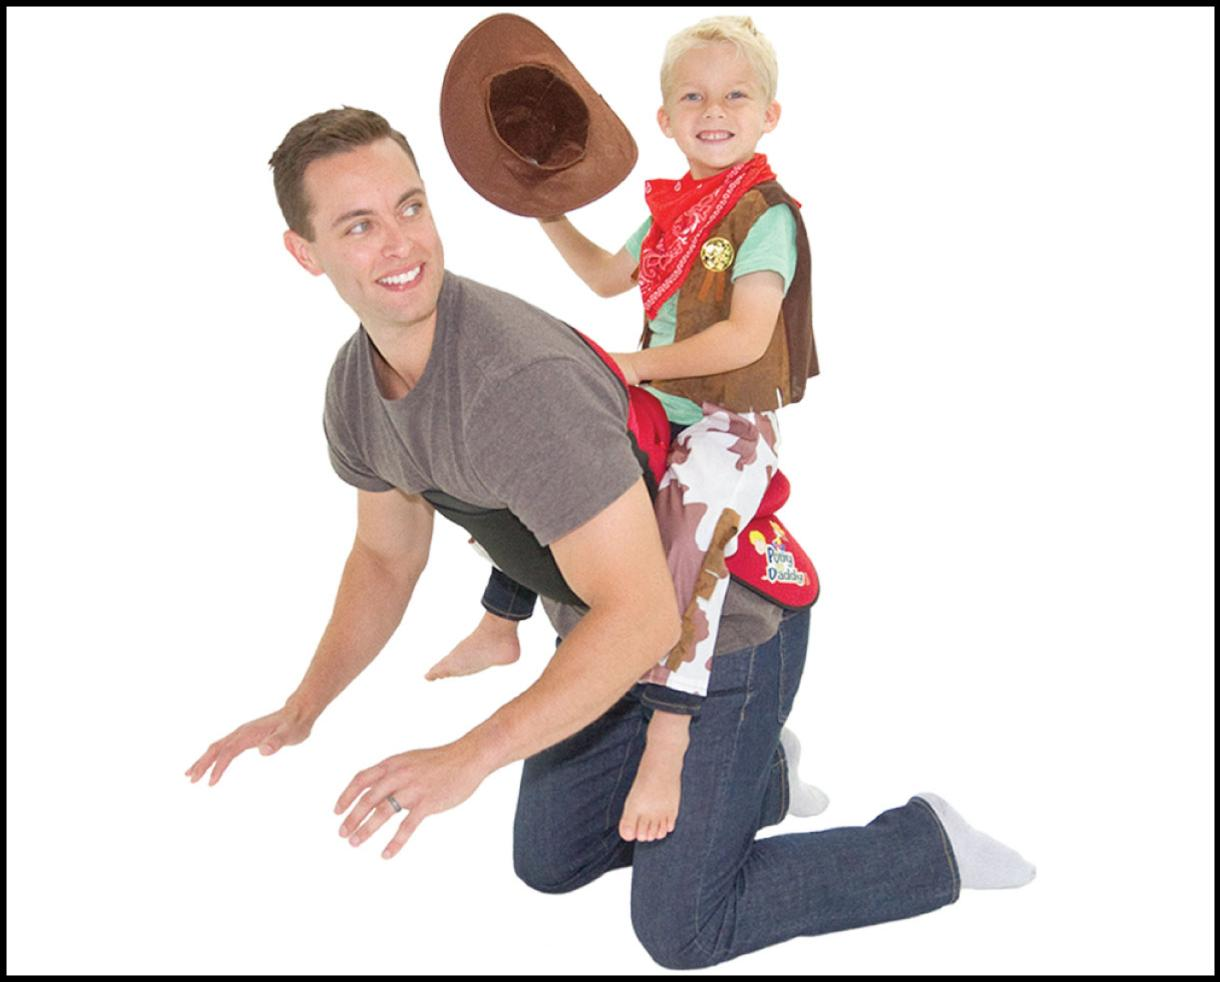 50% Off a Second Saddle with the Purchase of Any Pony Up Daddy Saddle - The TODAY Show Gift of the Year!